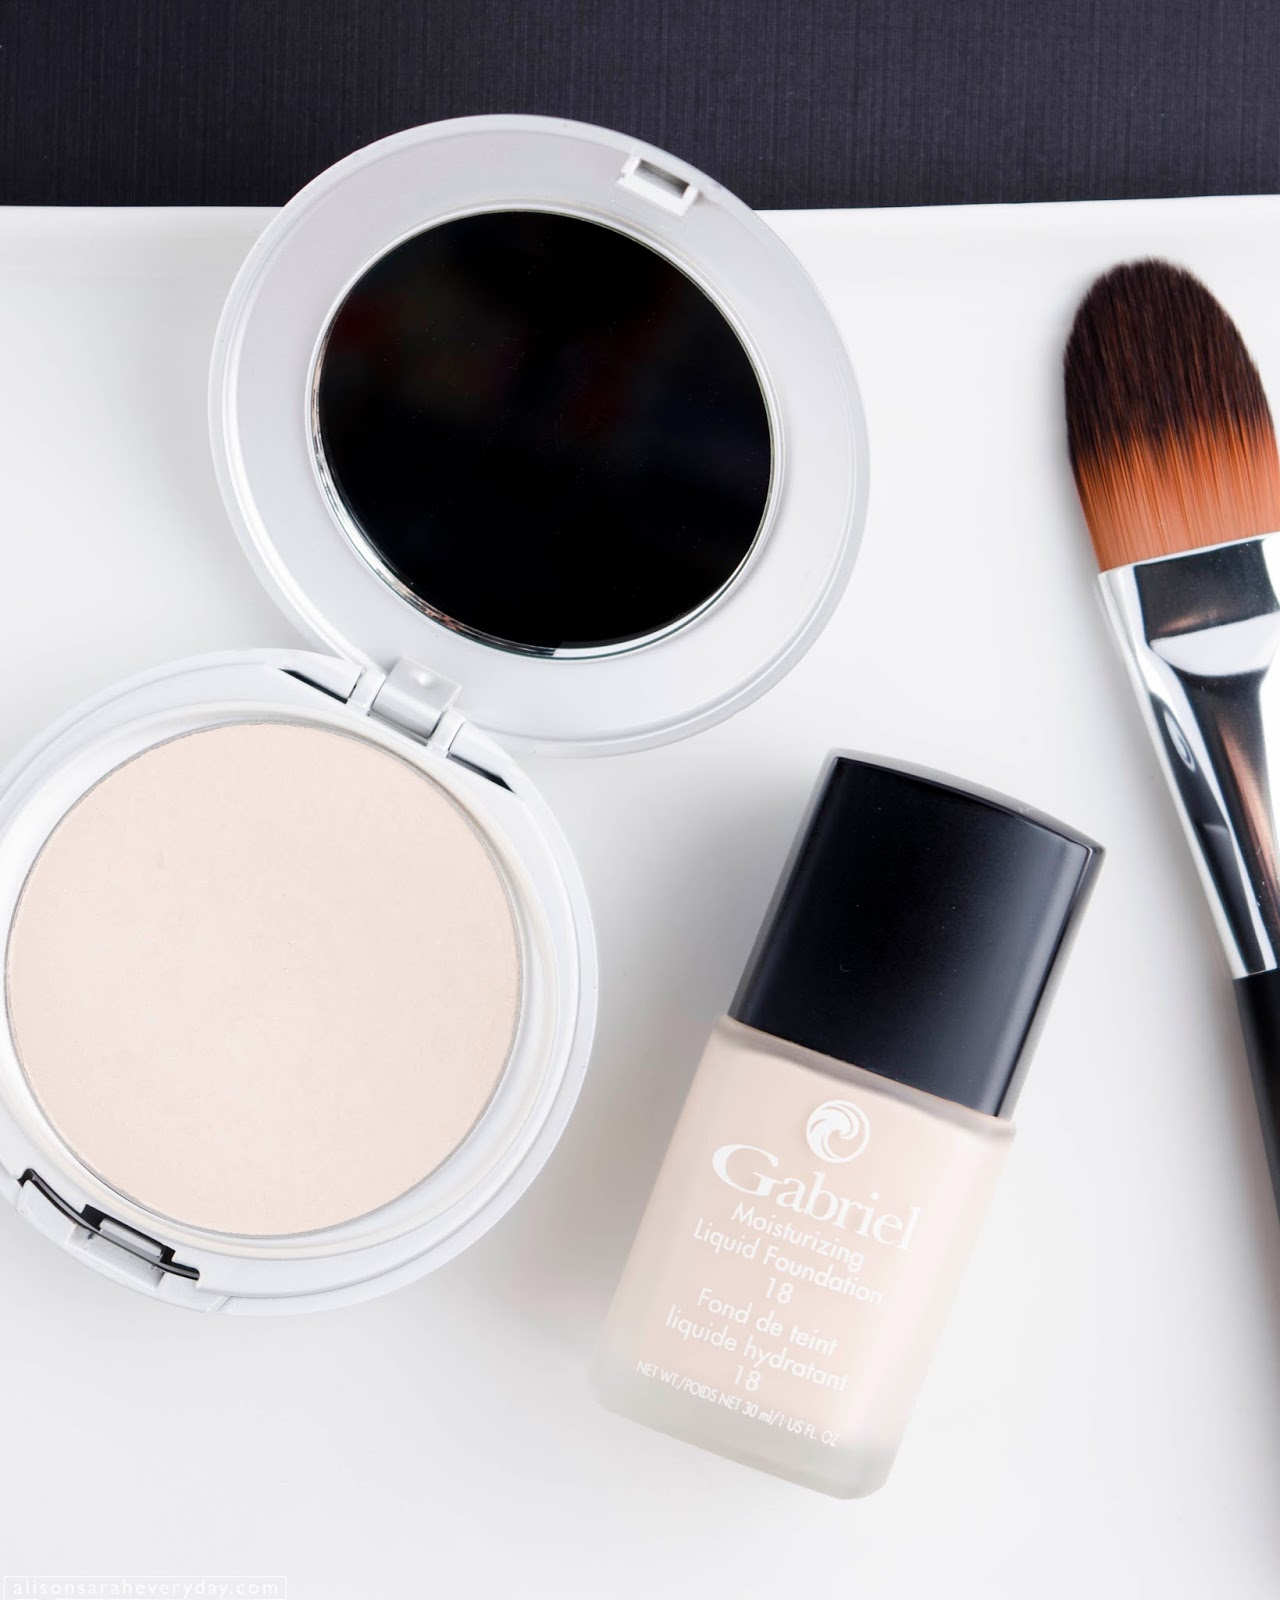 A flatlay image of Gabriel Cosmetics Liquid Foundation and Zuzu Luxe Powder Foundation